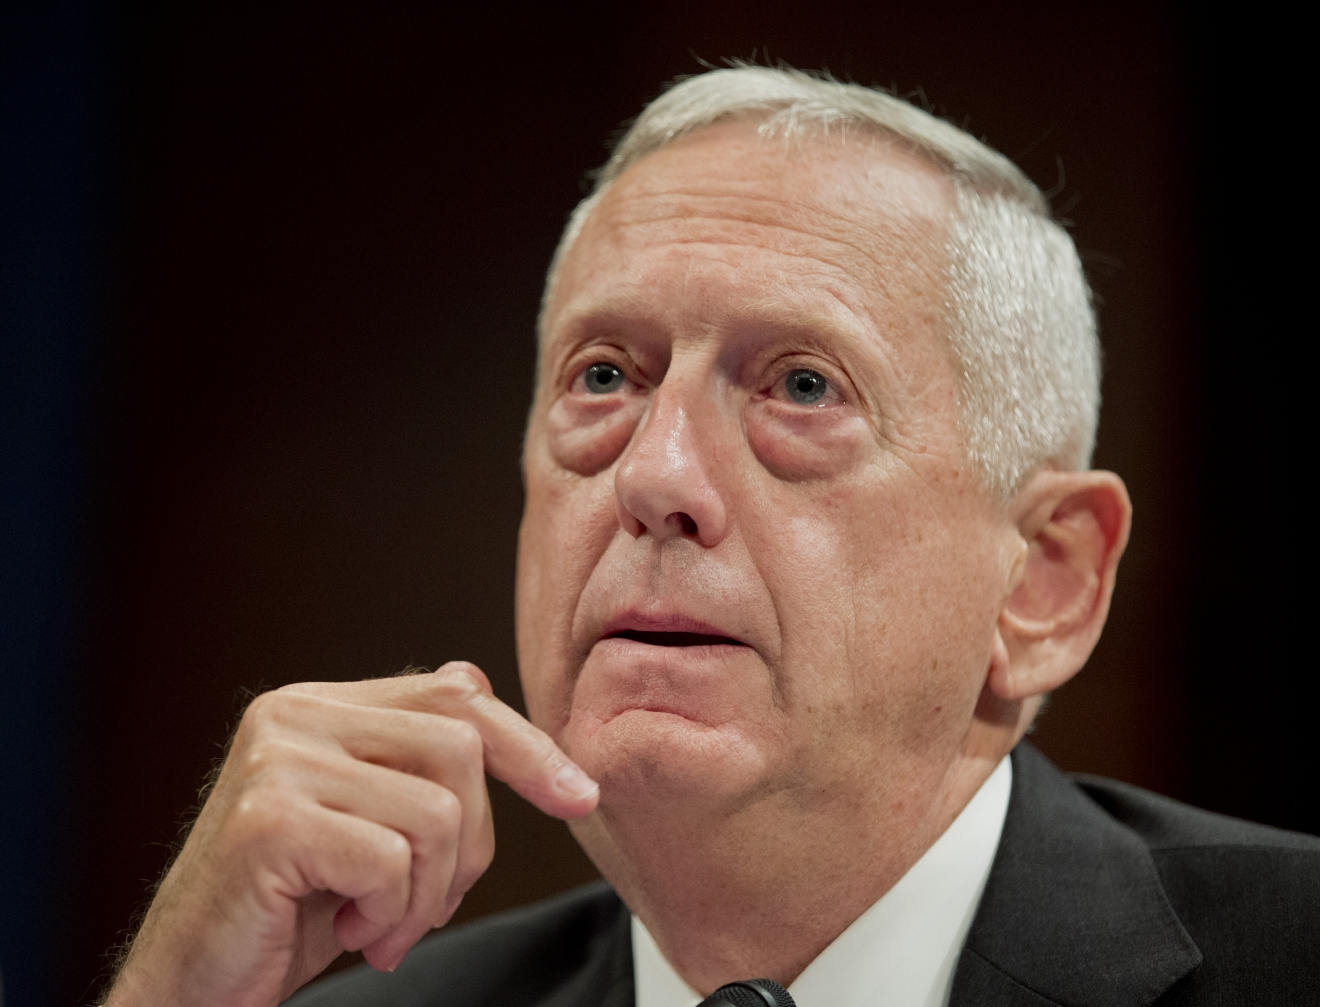 Former commander of the U.S. Central Command (CENTCOM) Gen. James Mattis, USMC (Ret.), testifies before a House Permanent Select Committee on Intelligence full committee hearing on the threat posed by the Islamic State of Iraq and the Levant (ISIL), al-Qa'ida, and other Islamic extremists, on Capitol Hill in Washington, Thursday, Sept. 18, 2014.  (AP Photo/Manuel Balce Ceneta)